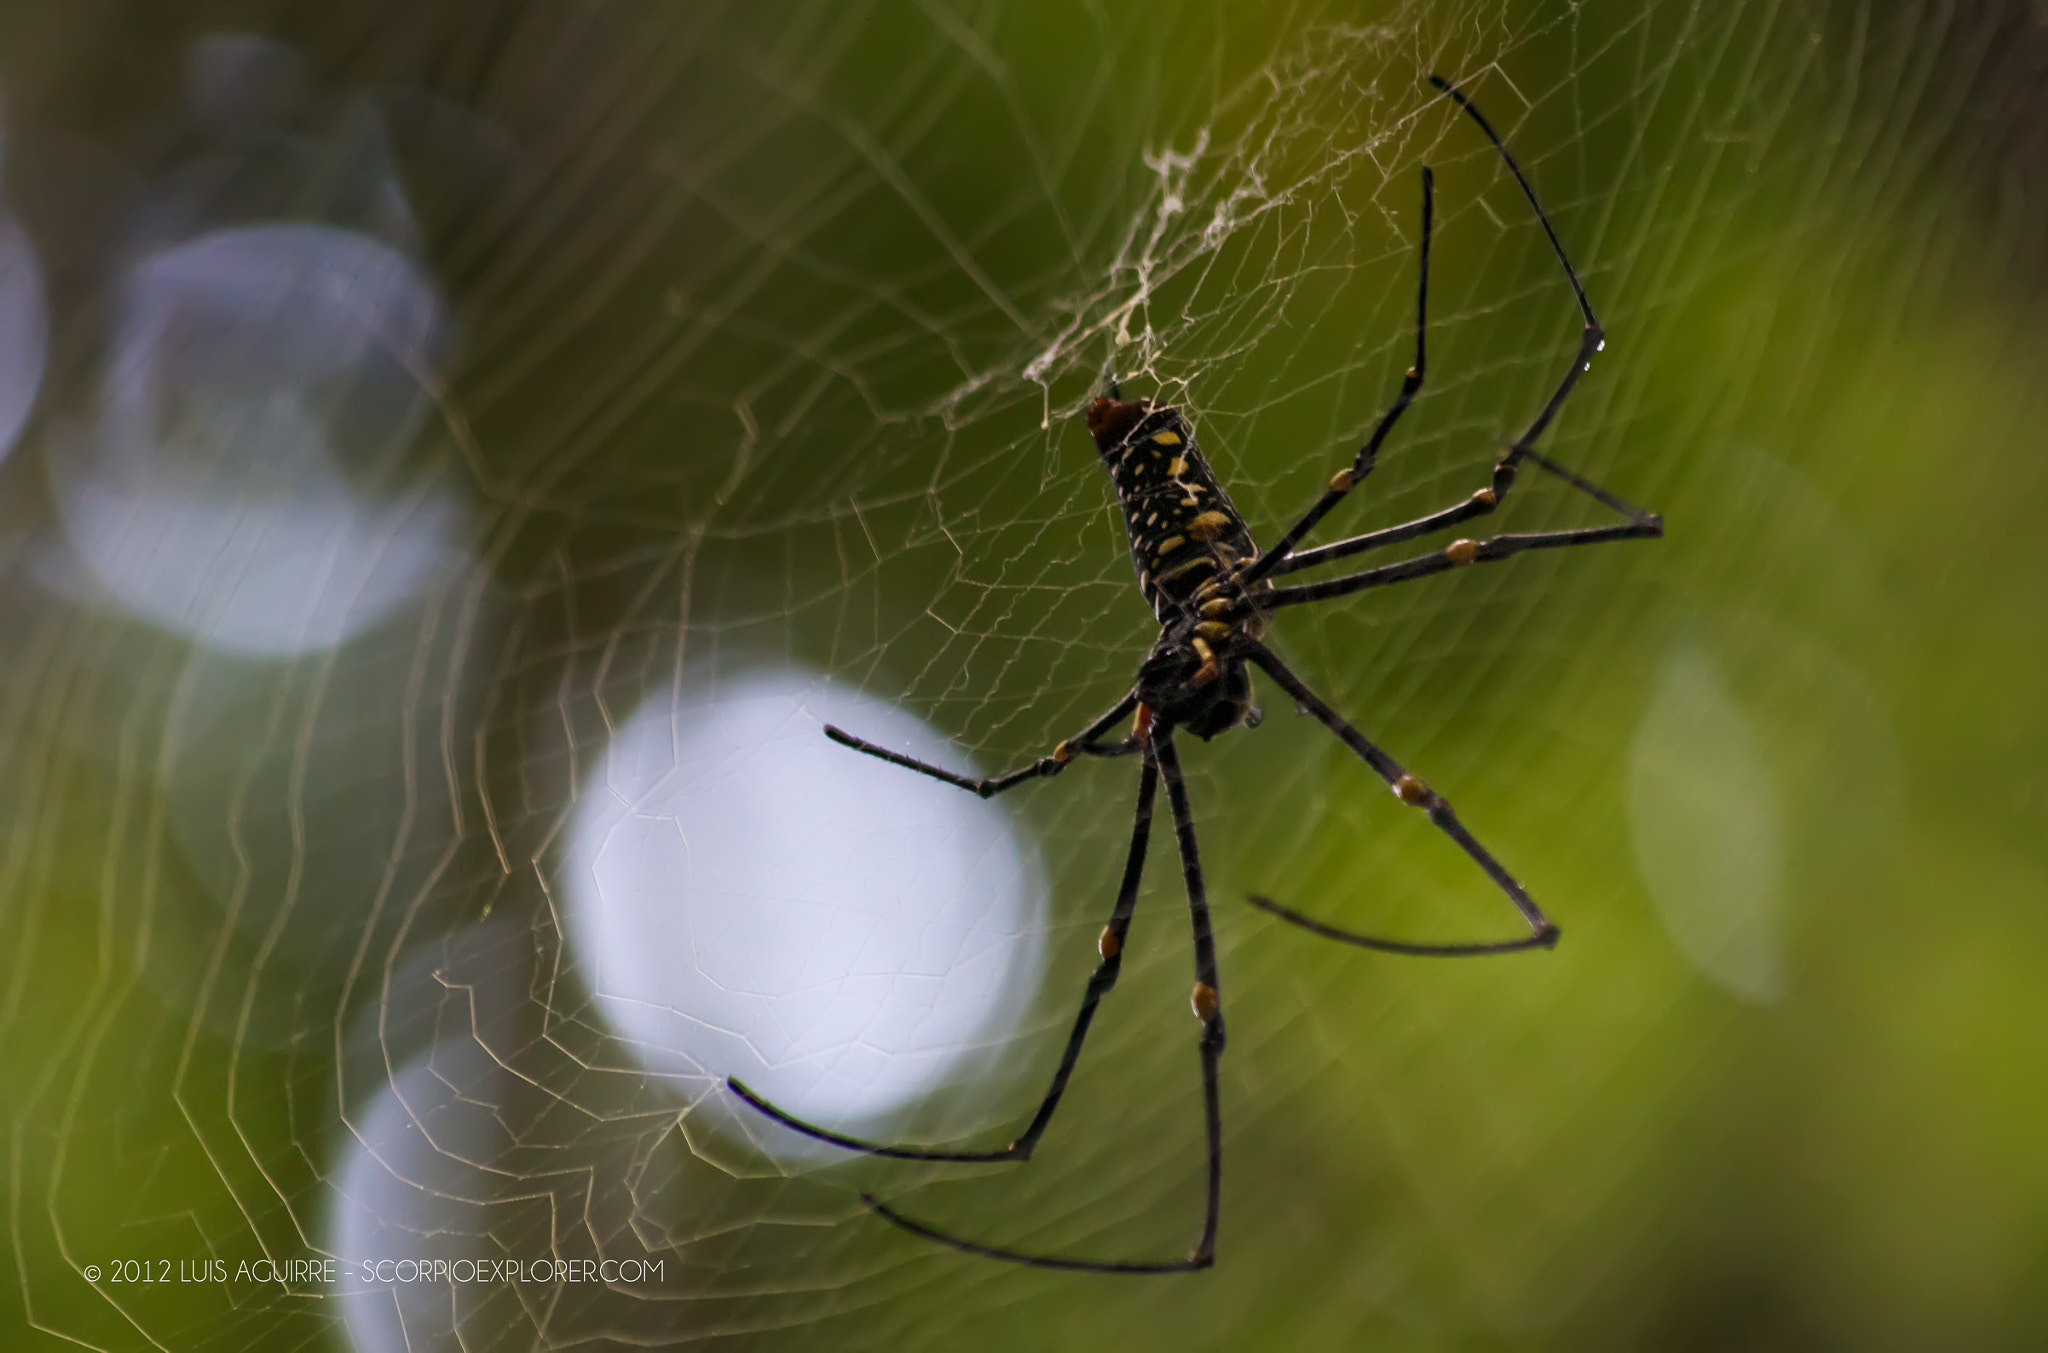 Photograph The Spider by Luis Aguirre on 500px